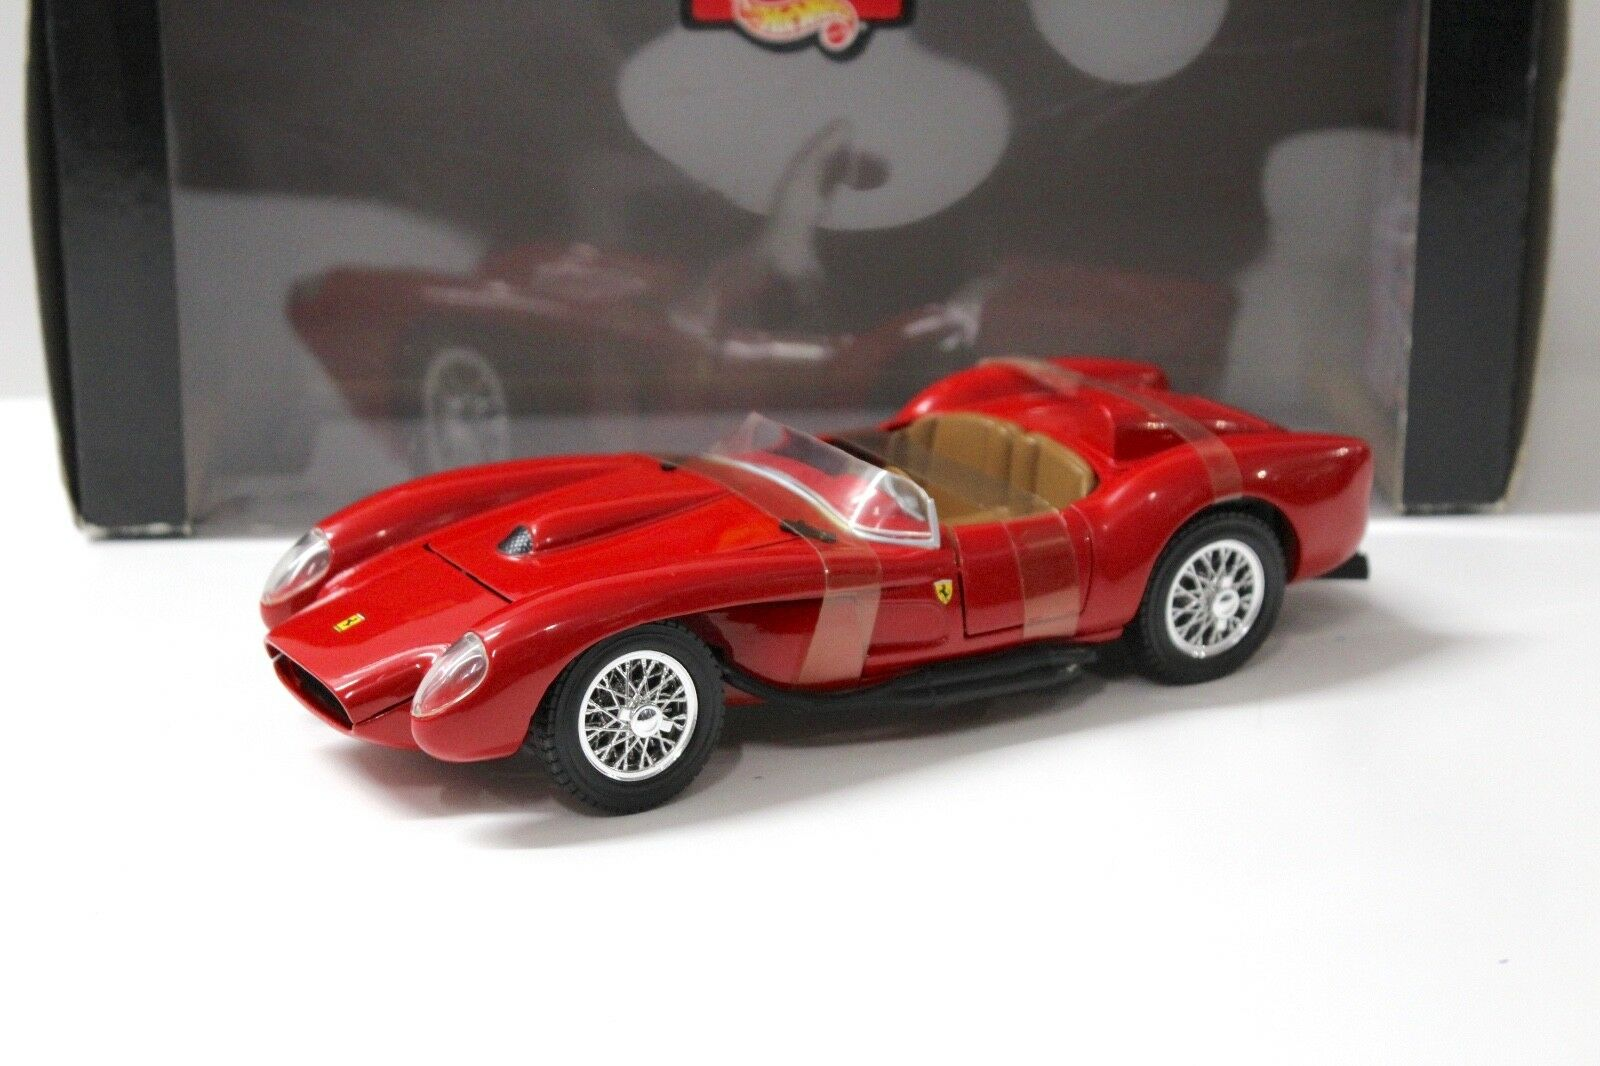 1 18 Hot Wheels Ferrari 250 Testa Rossa red NEW bei PREMIUM-MODELCARS